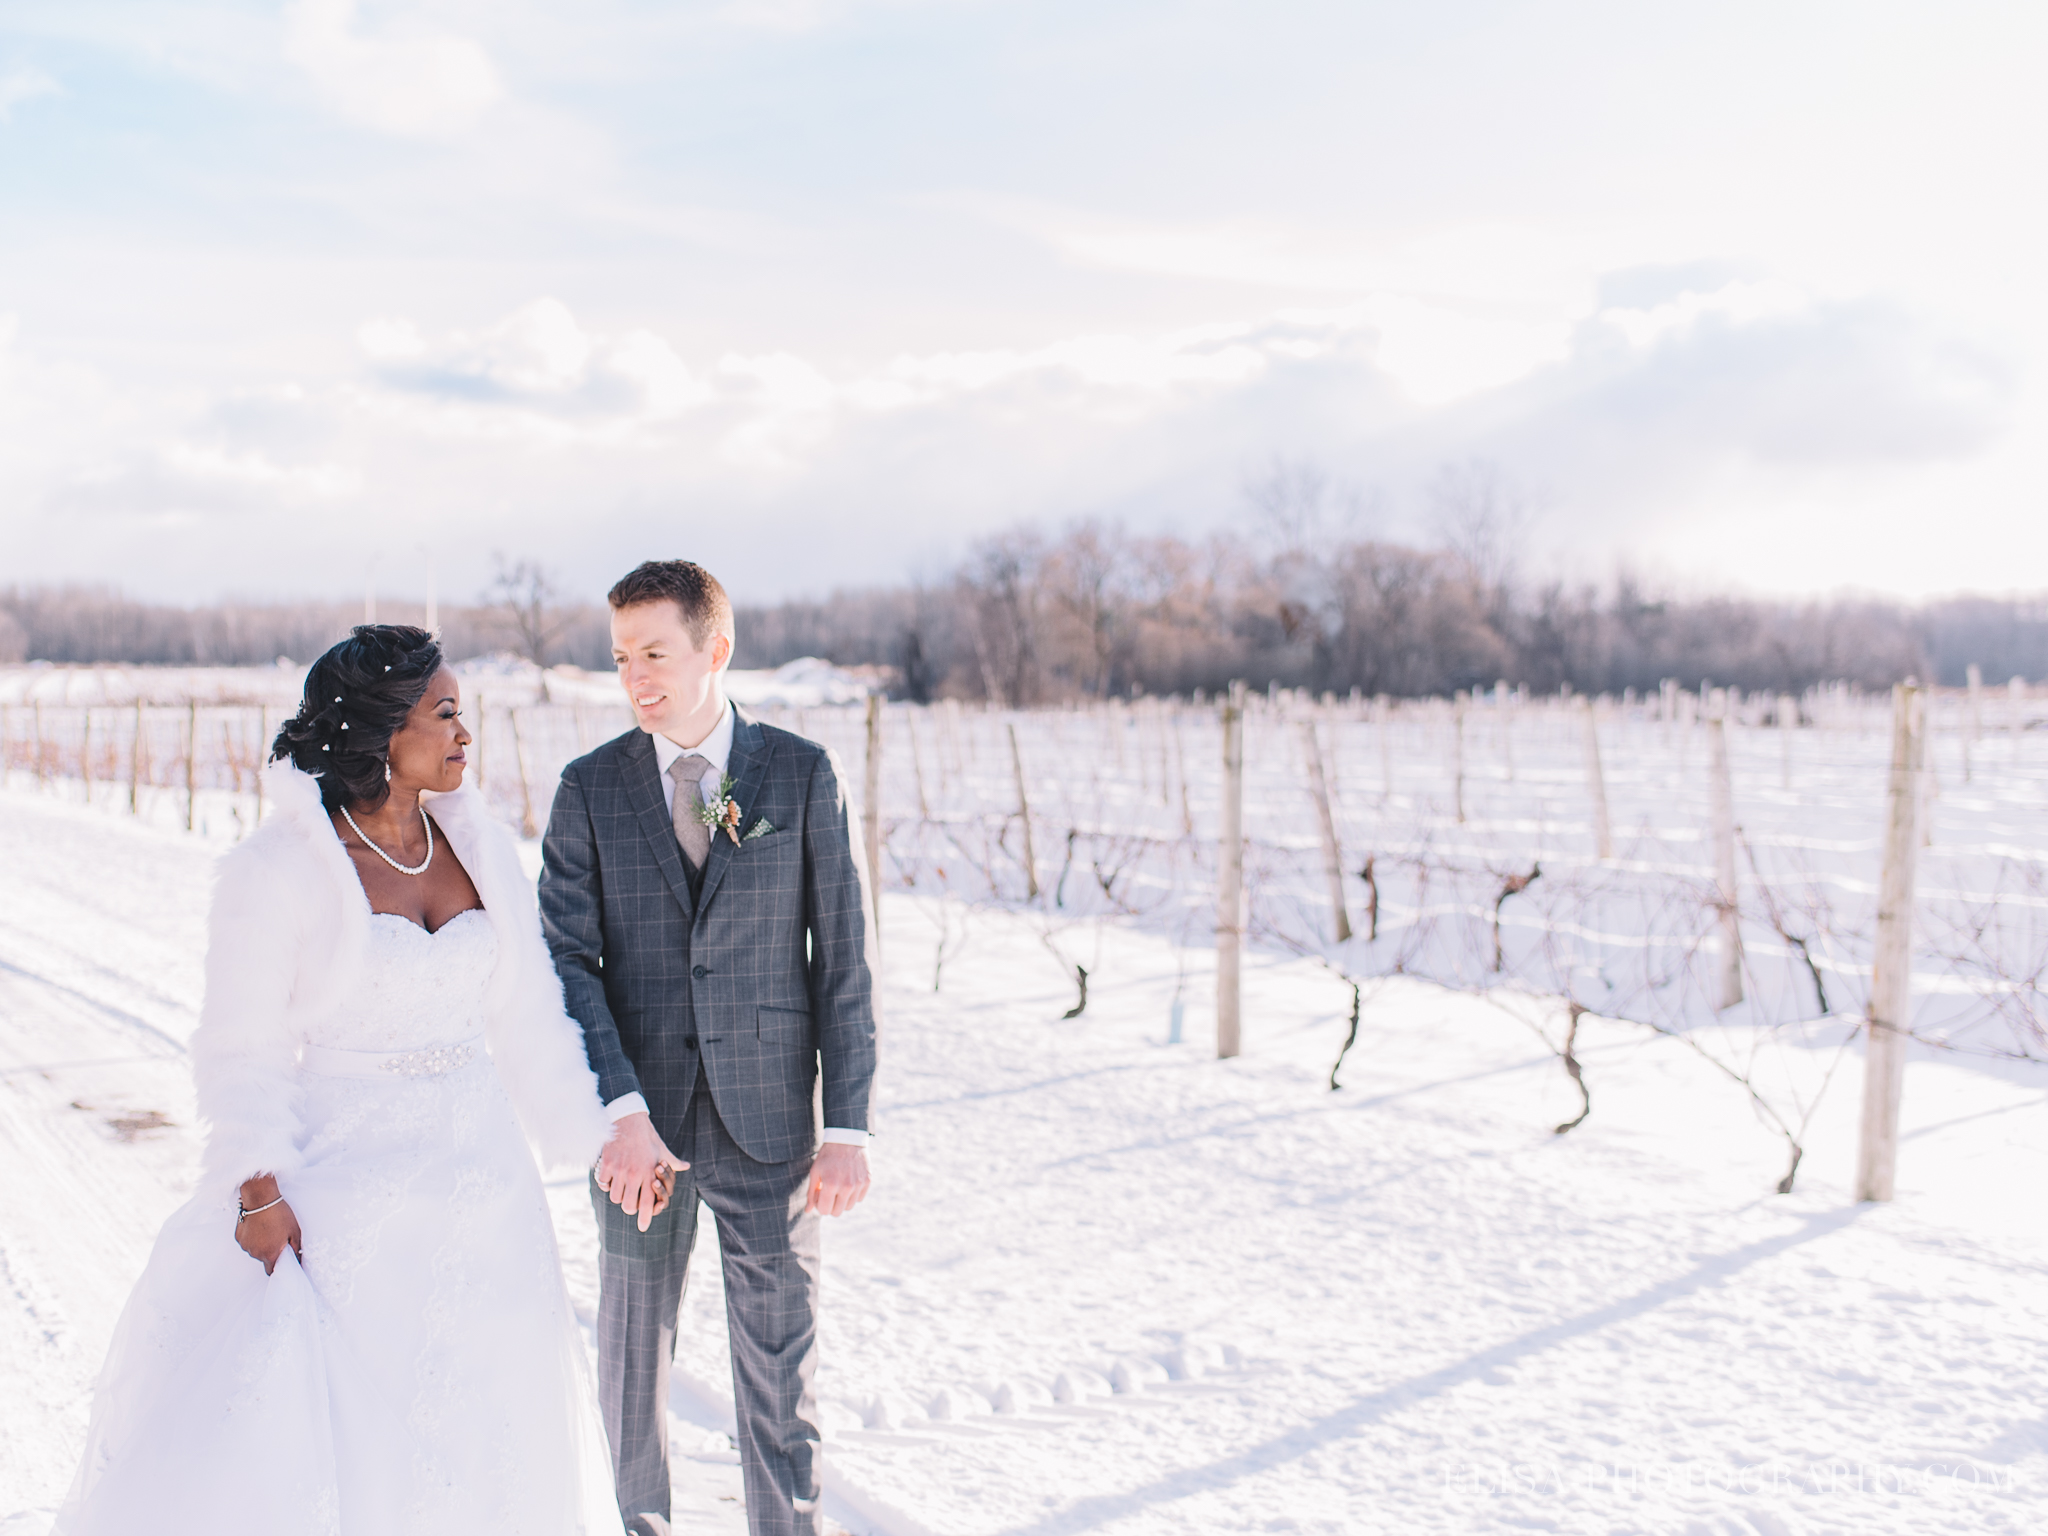 mariage en hiver a quebec winter wedding chateau taillefer lafont photo